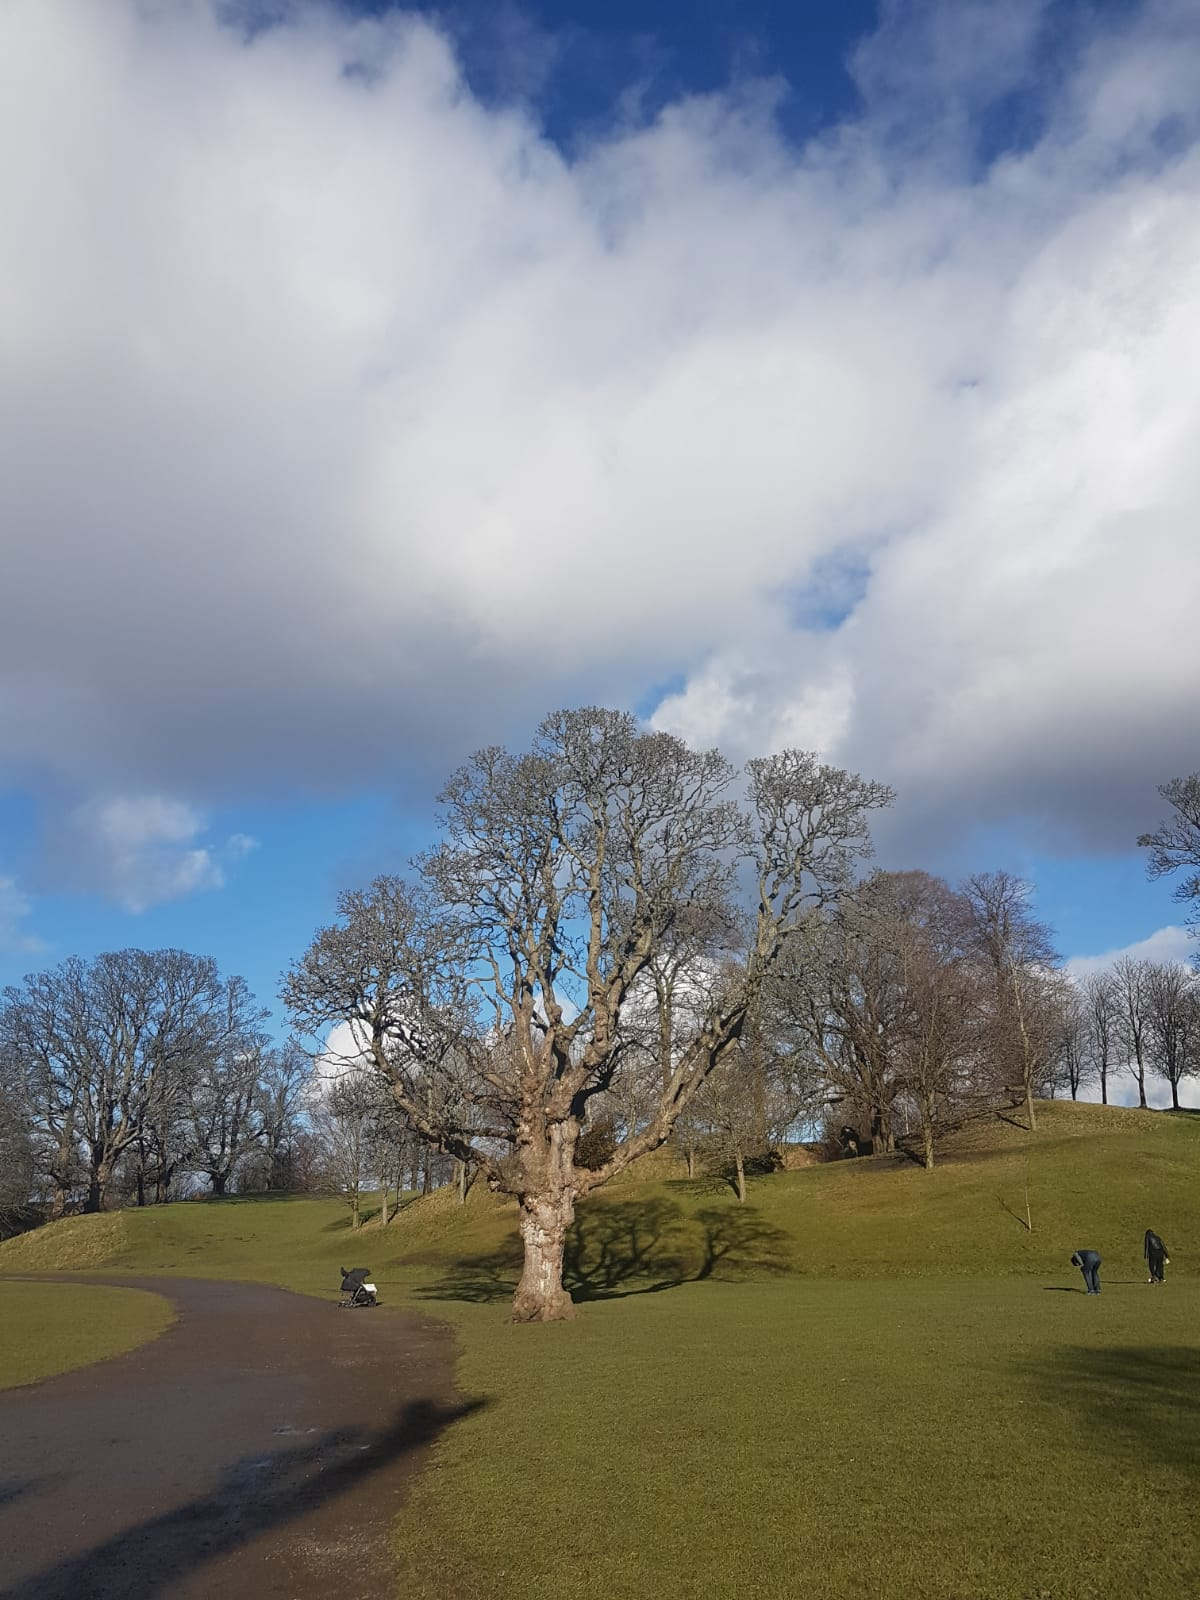 The Beautiful Trees of Callendar Park